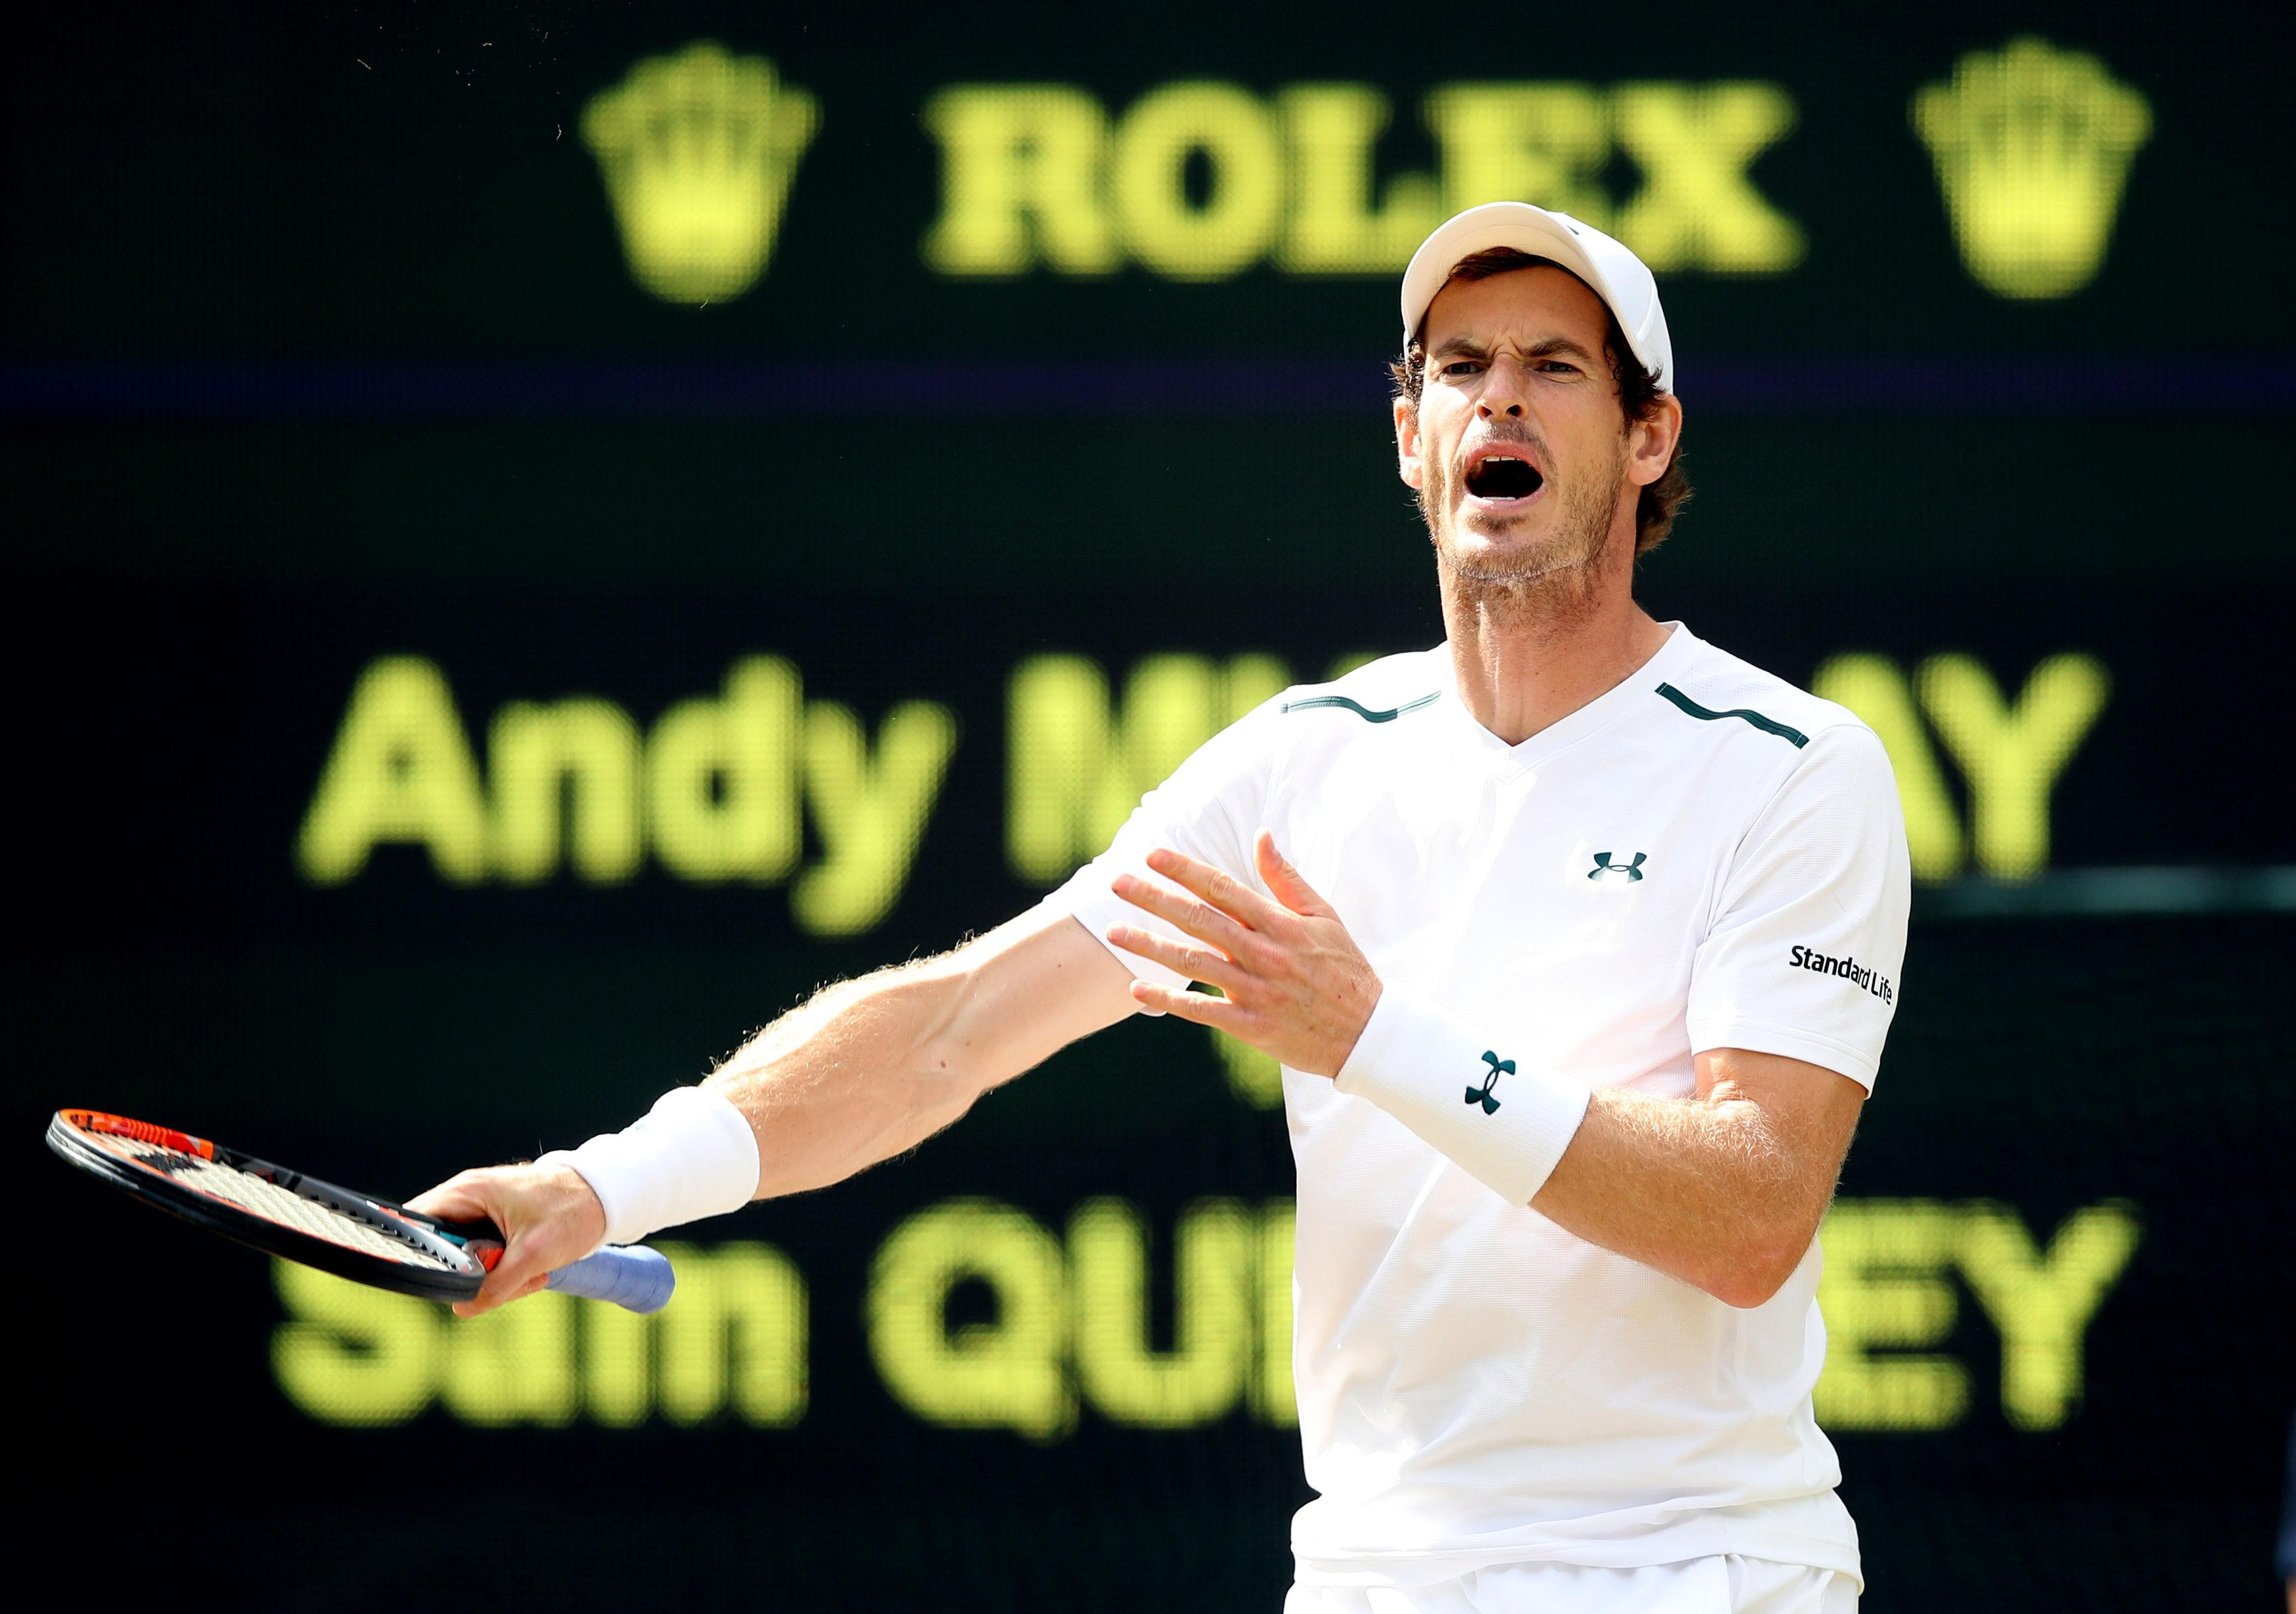 Andy Murray's progress has been 'very slow' in recovering from injury